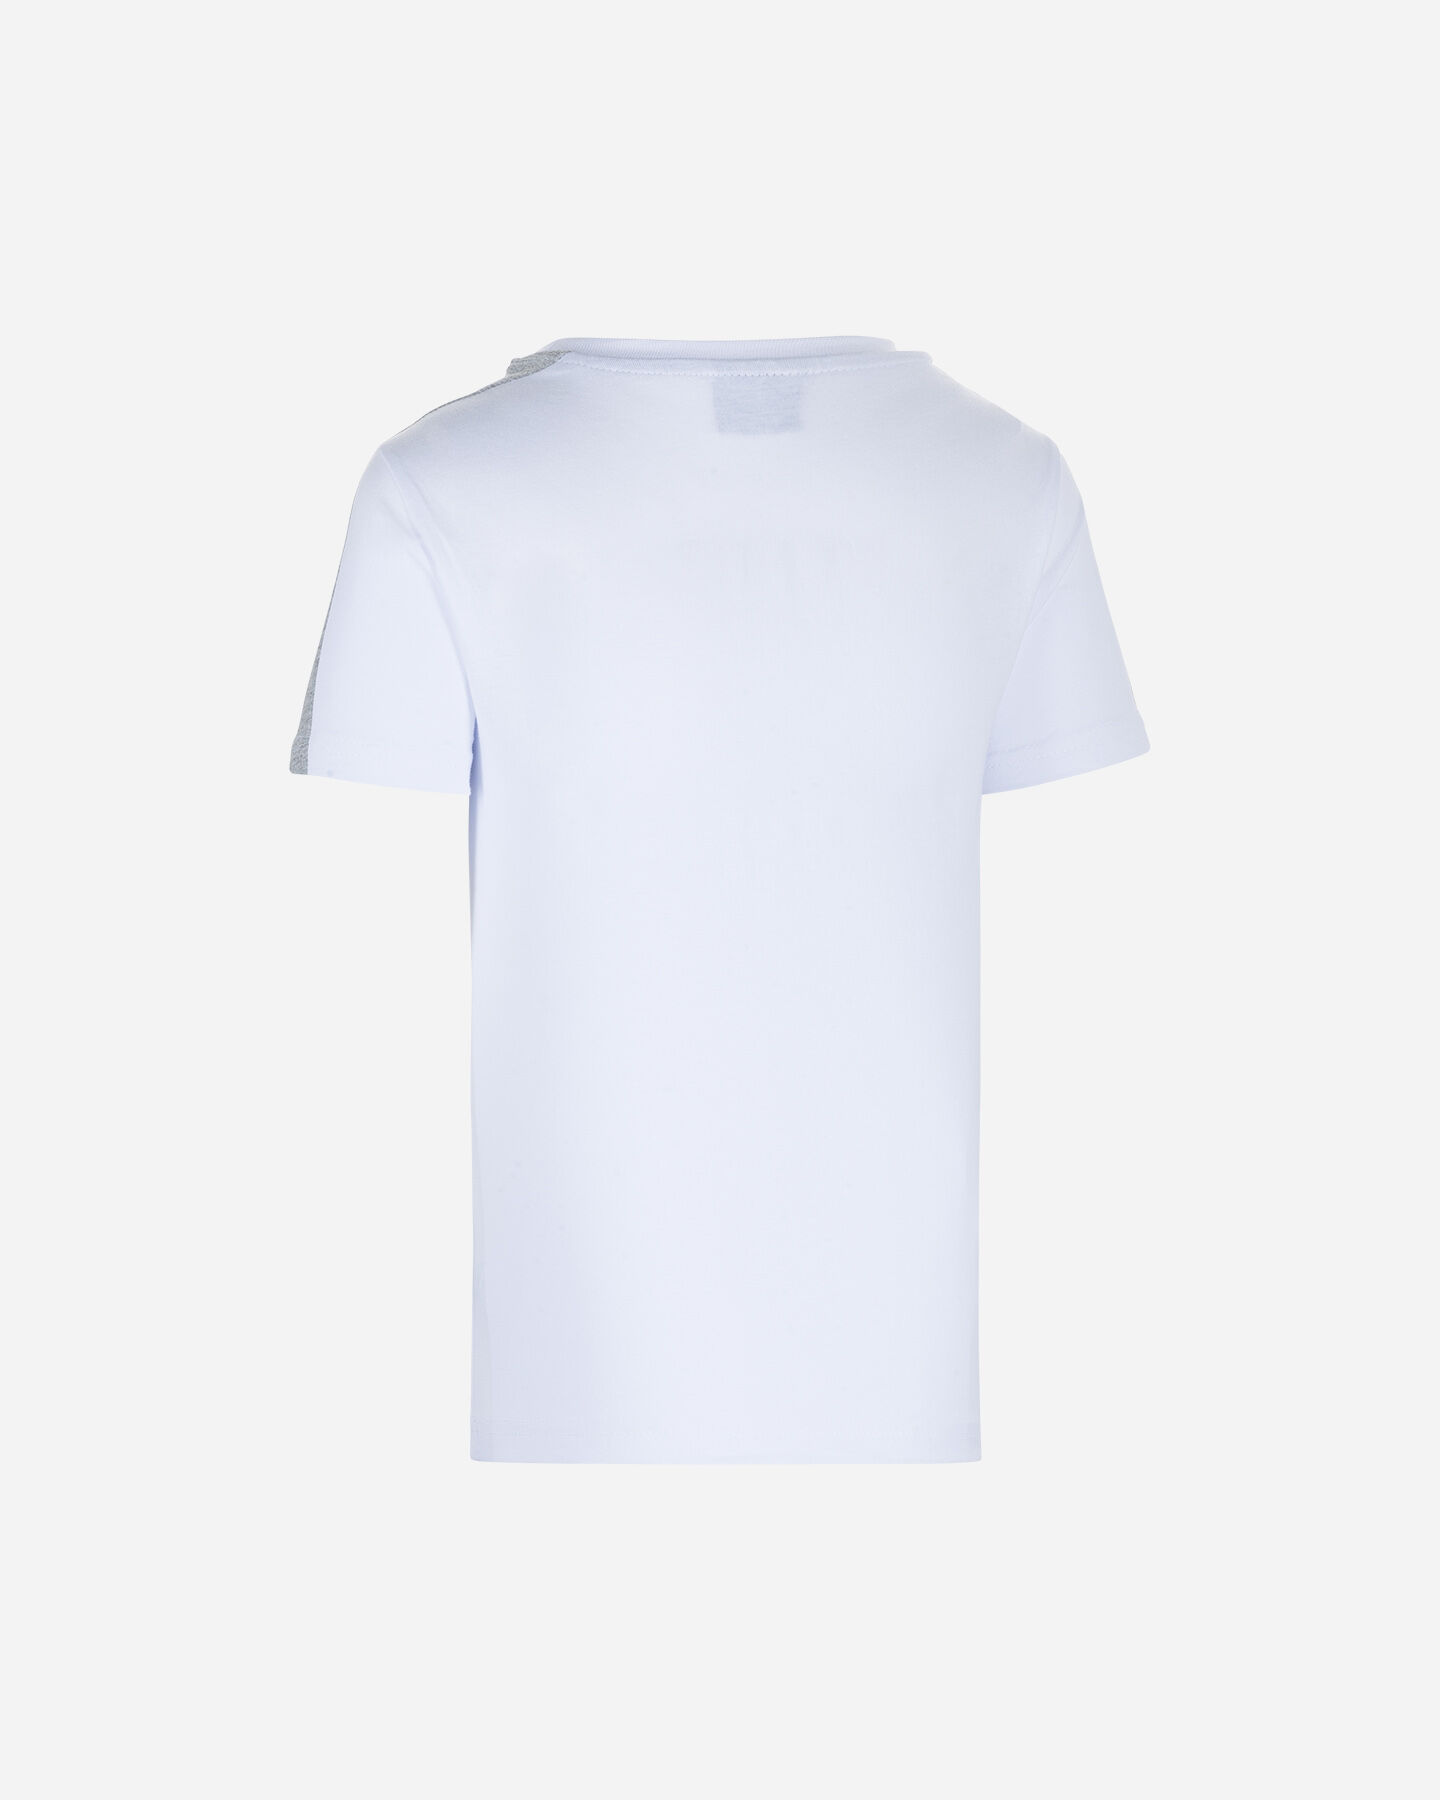 T-Shirt ADMIRAL BASIC 1914 JR S4075638 scatto 1